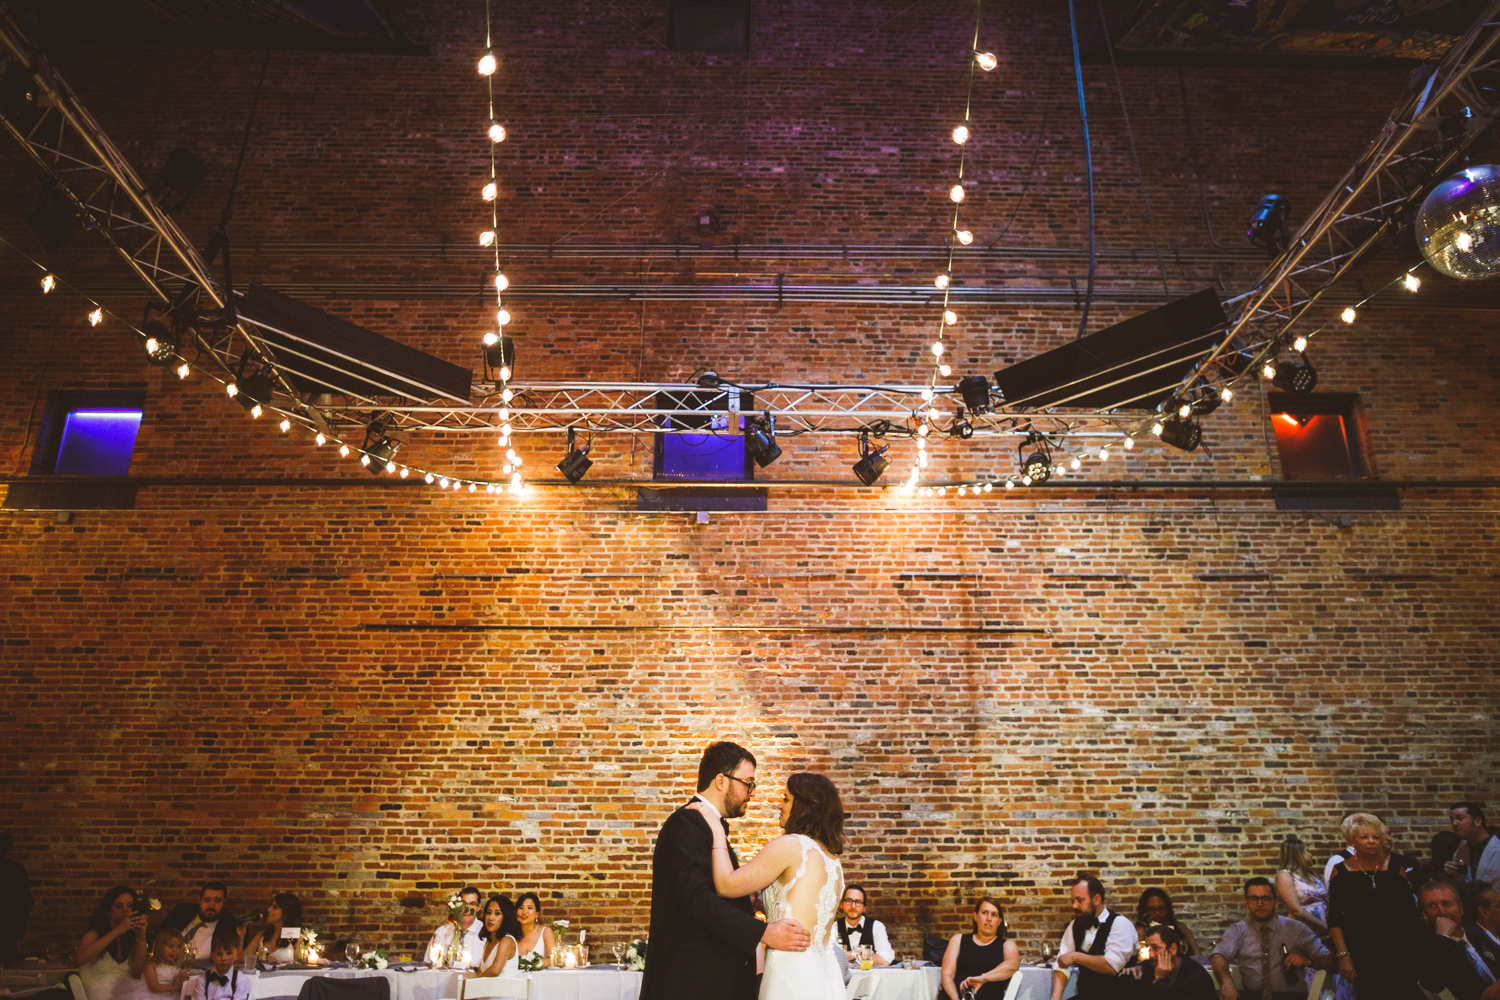 046 - bride and groom first dance at the American Visionary Arts Museum in Baltimore Maryland.jpg